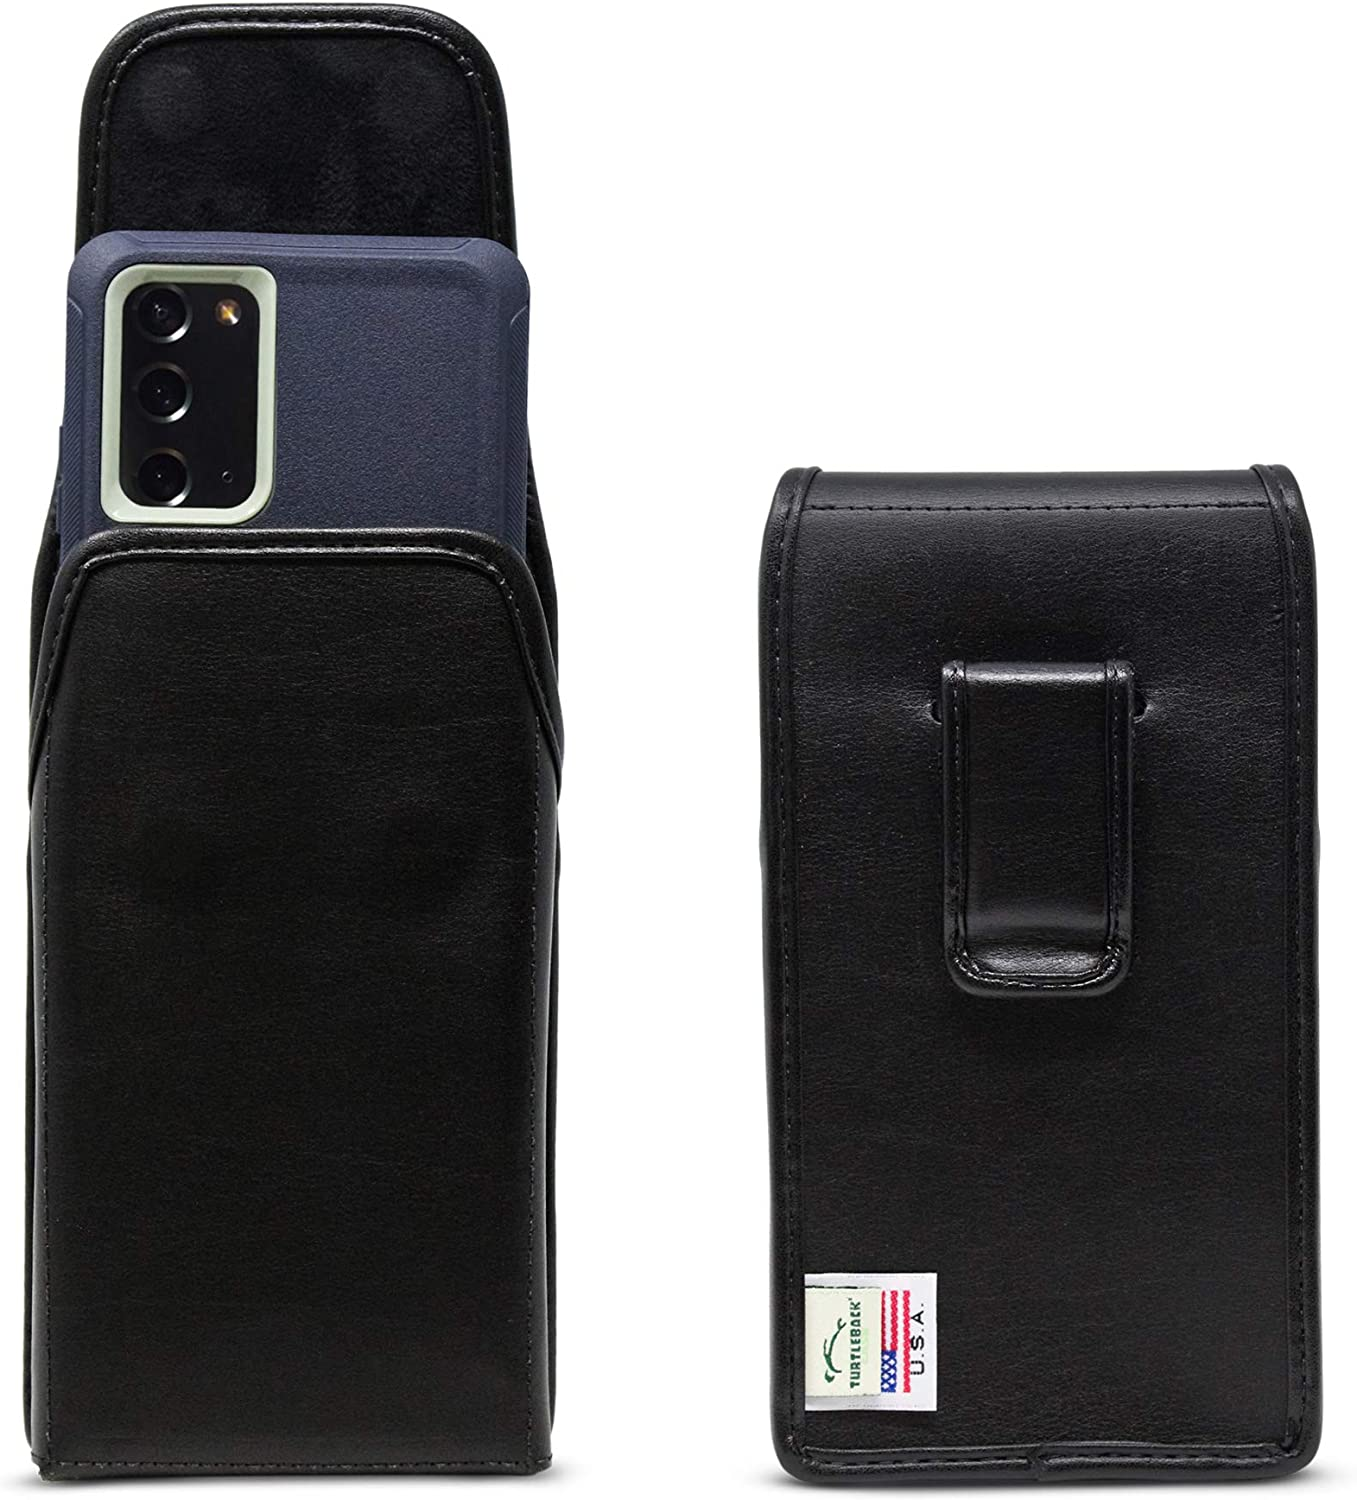 Turtleback Holster Made for Note 20 Fits w/OB Defender or Bulky Cases, Vertical Belt Case, Black Leather Pouch with Executive Belt Clip, Made in USA